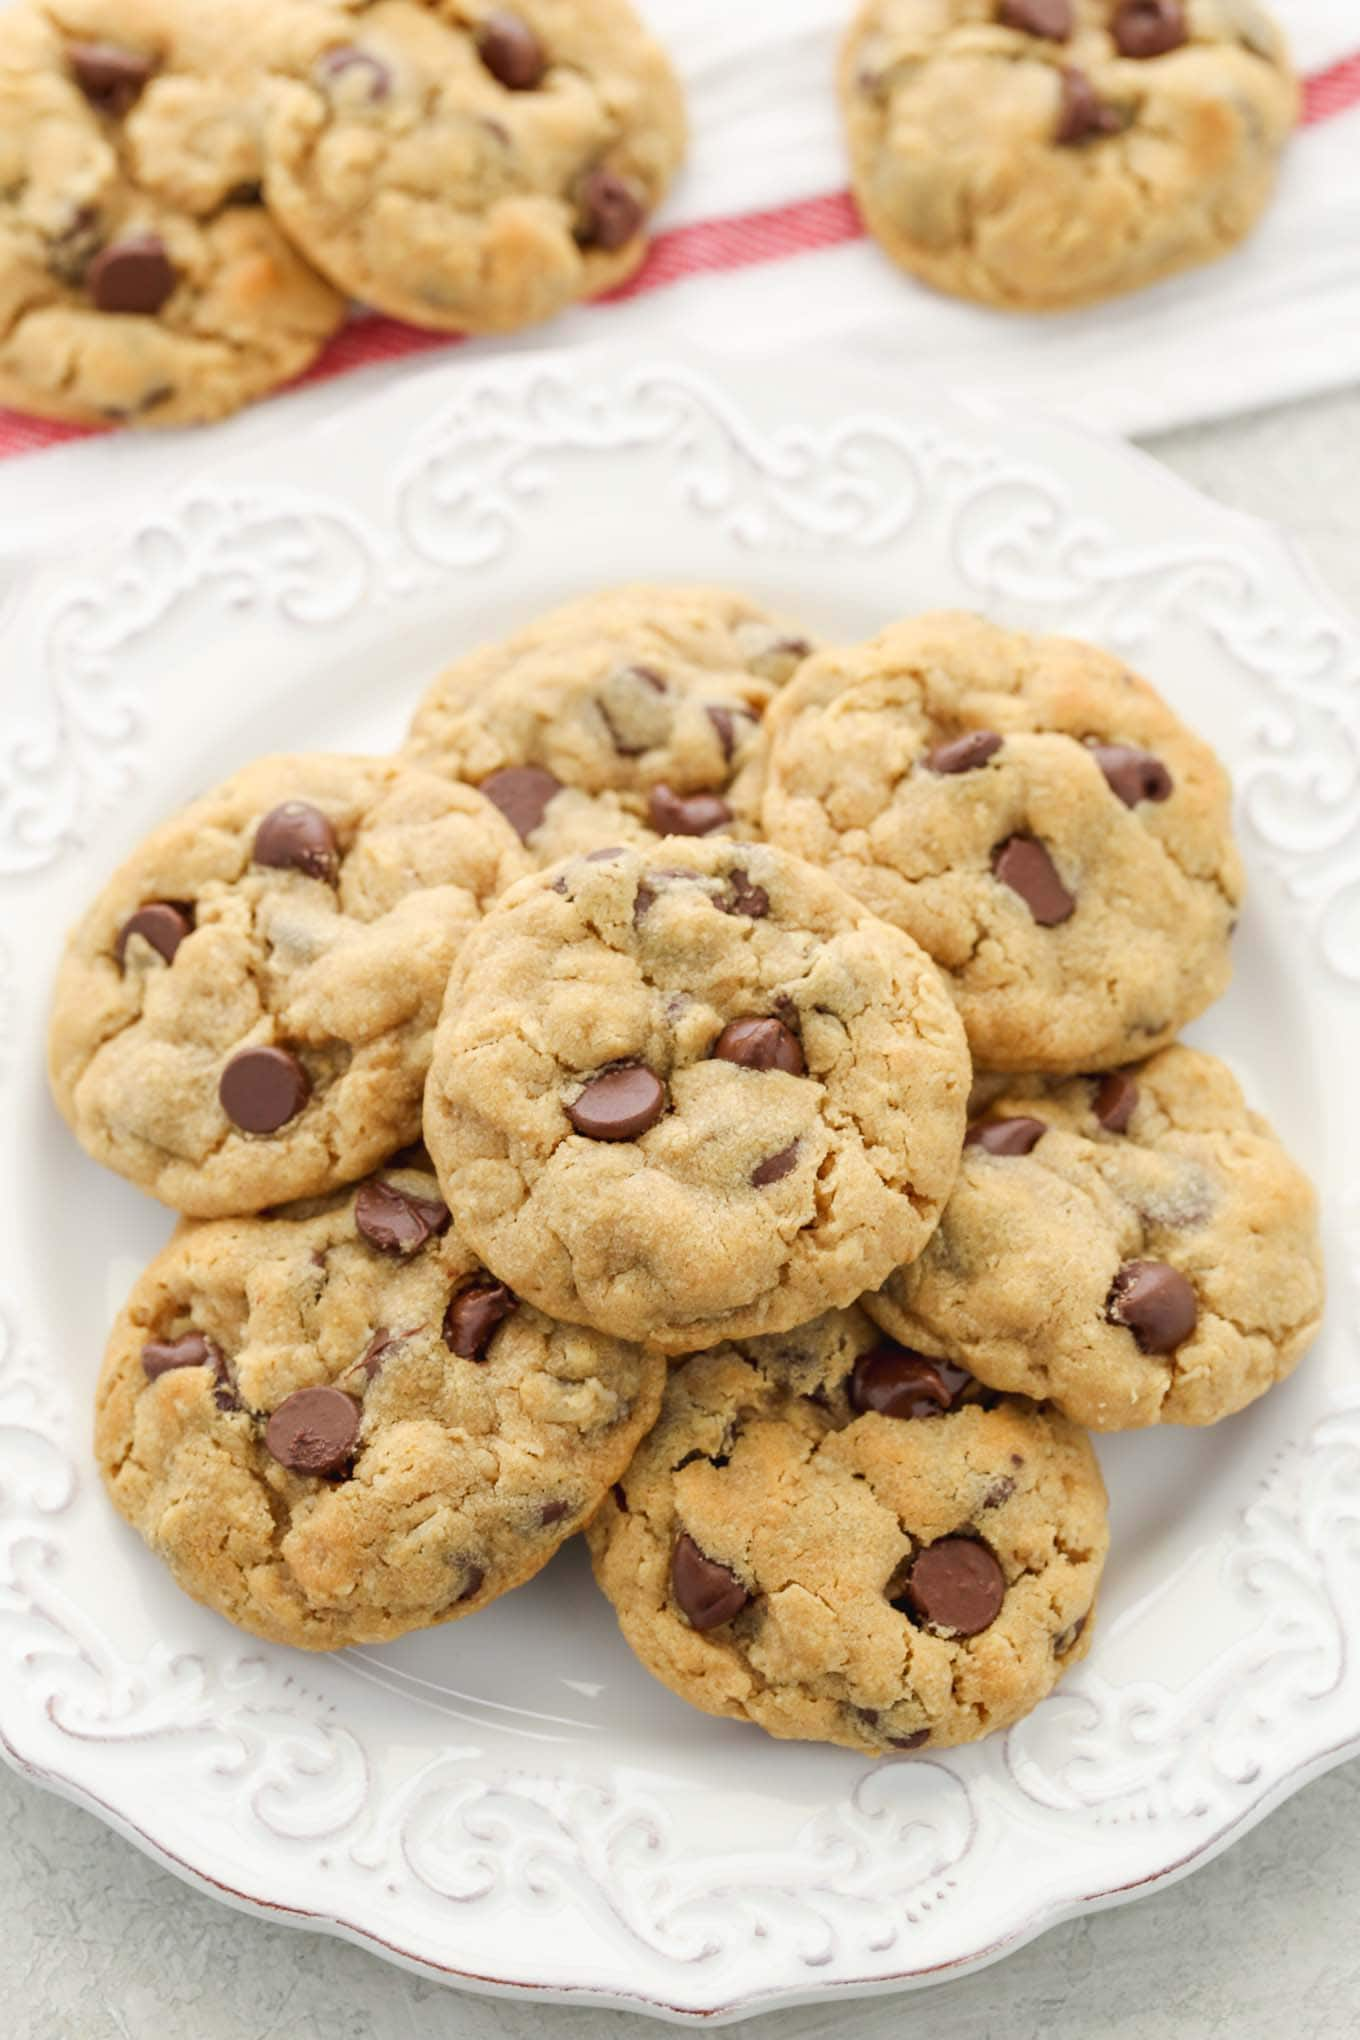 A stack of peanut butter oatmeal chocolate chip cookies on a plate with more cookies in the background.